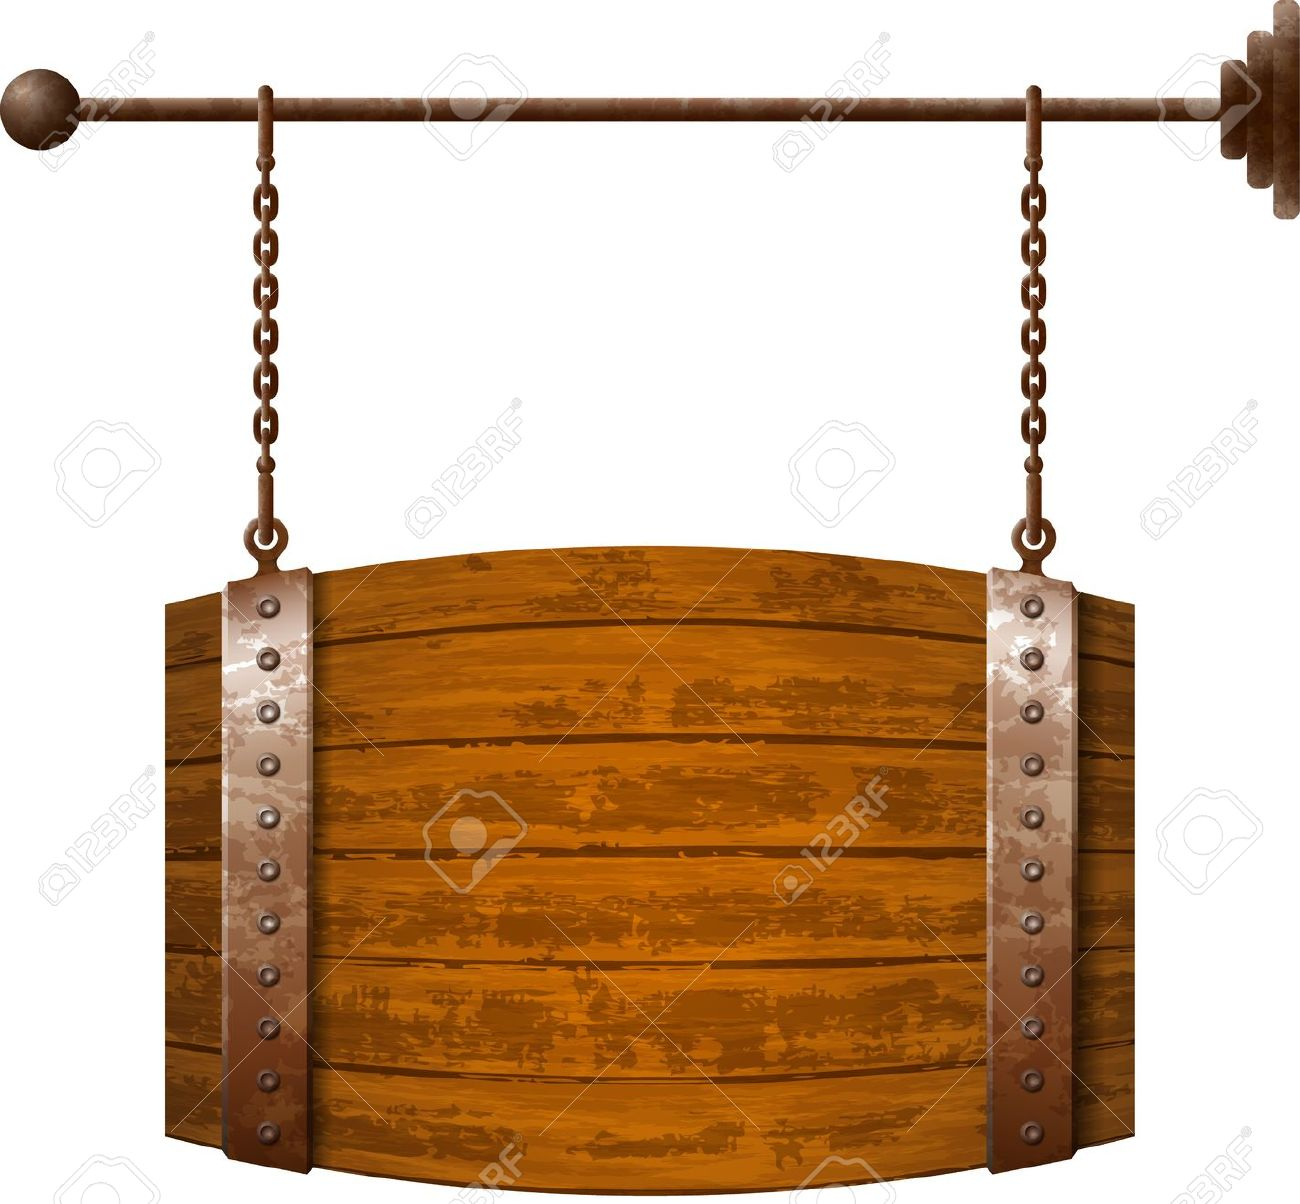 Barrel Shaped Wooden Signboard On Rusty Chains Royalty Free.